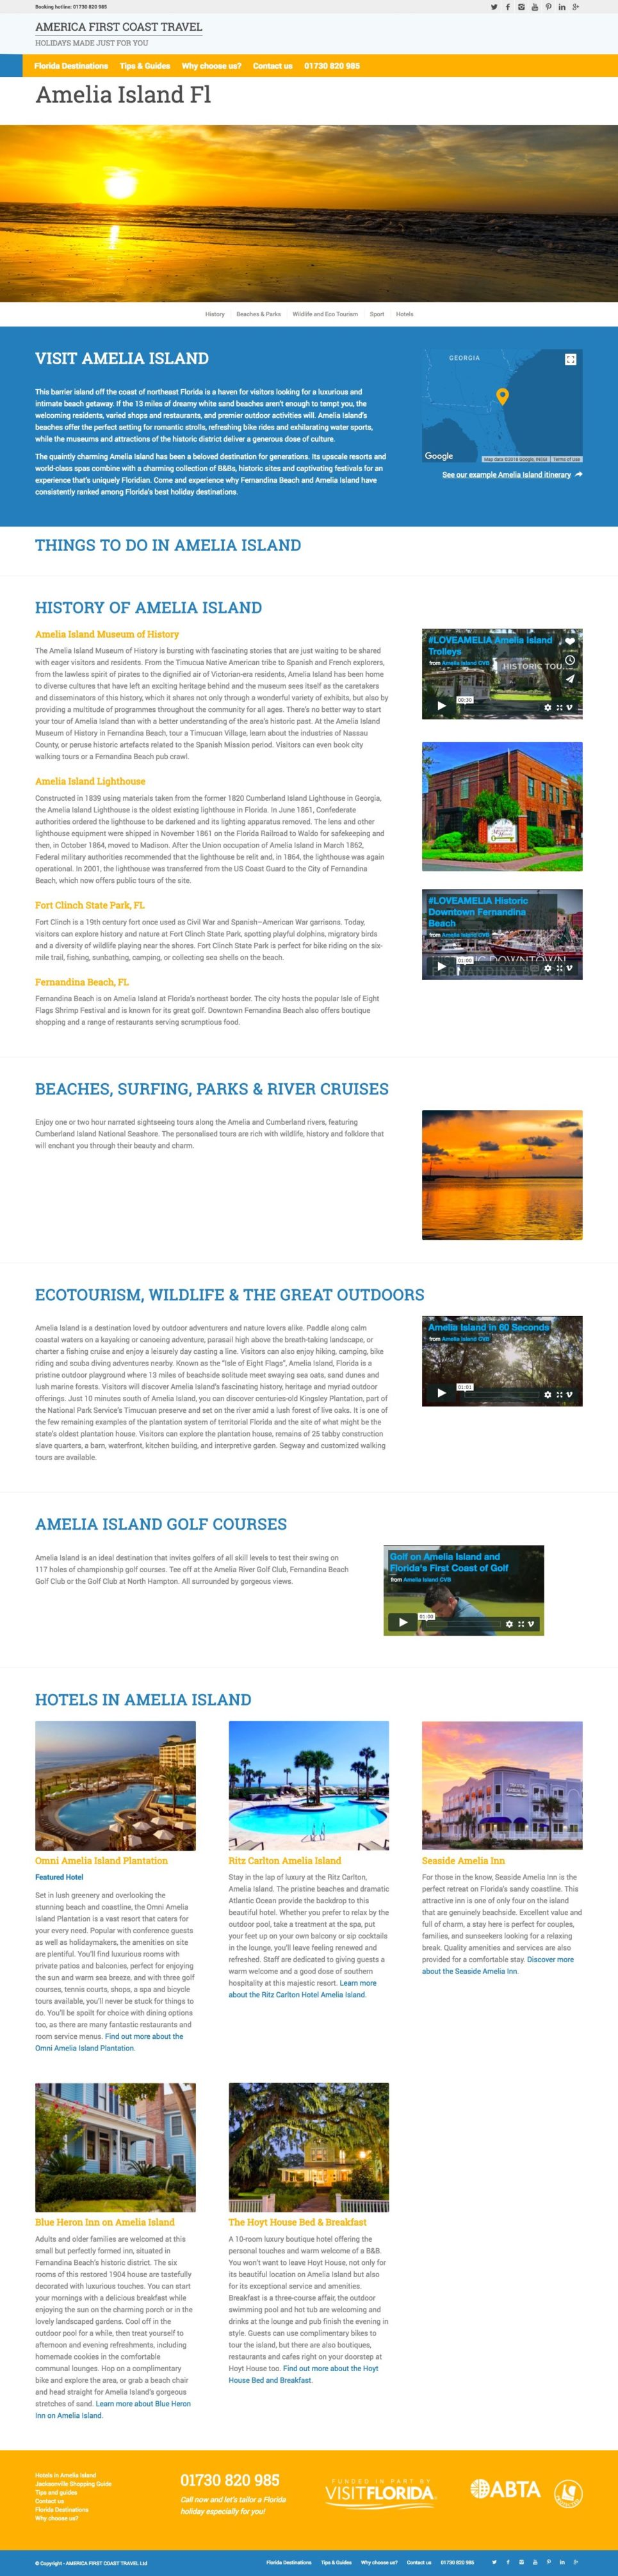 Amelia Island guide screenshot - copywriter for destination guides